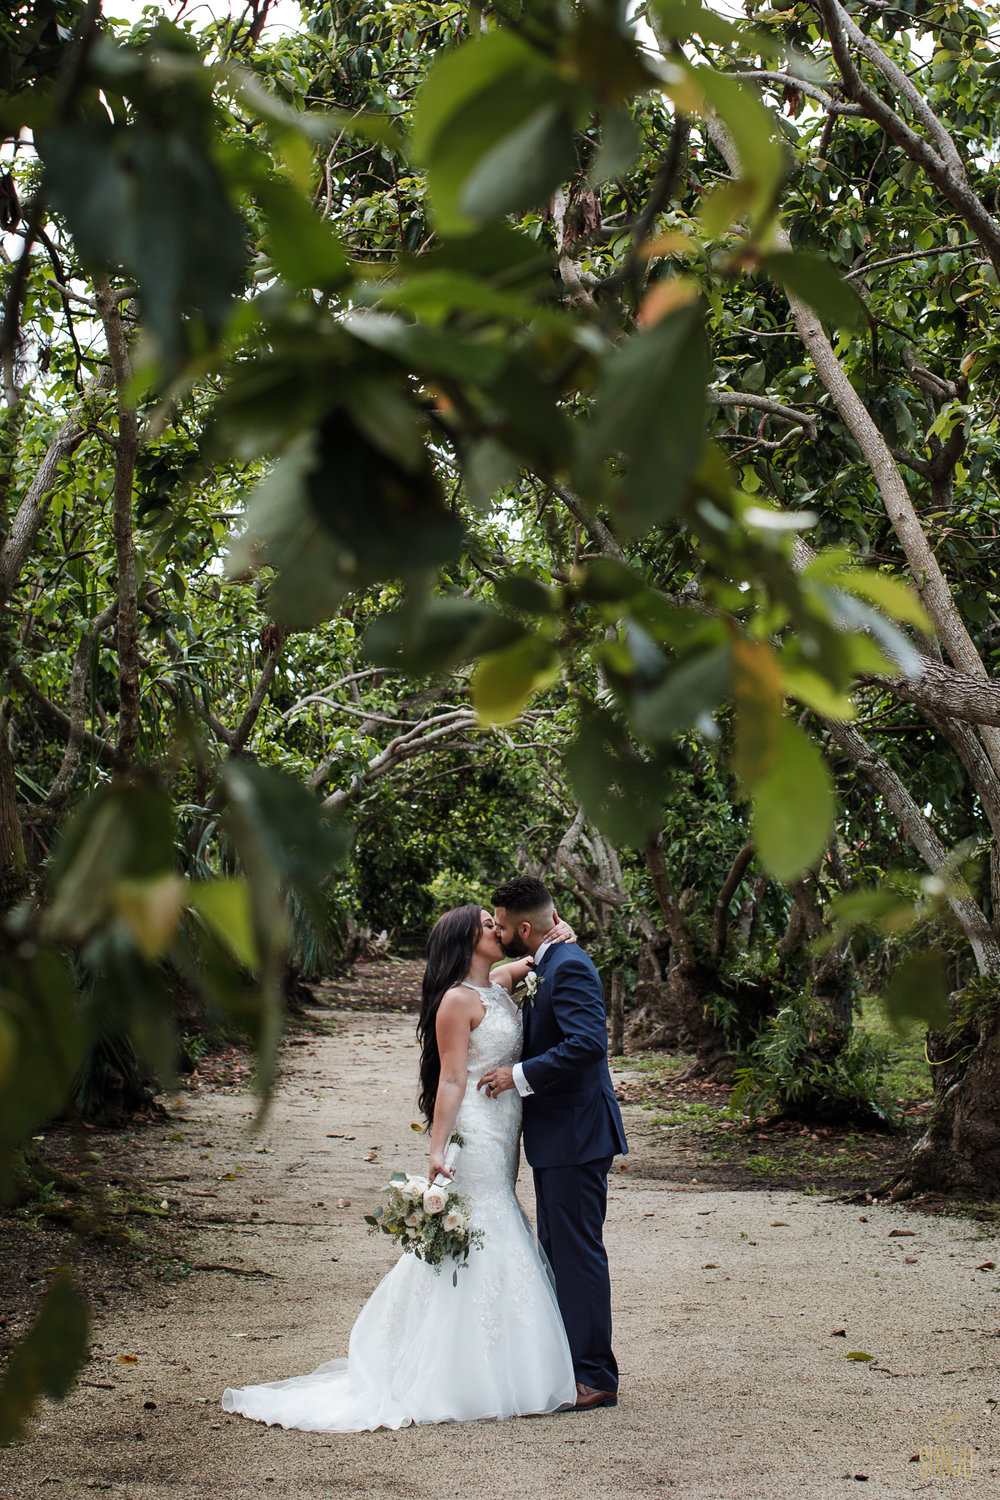 South Florida Wedding Photographer - The Old Grove